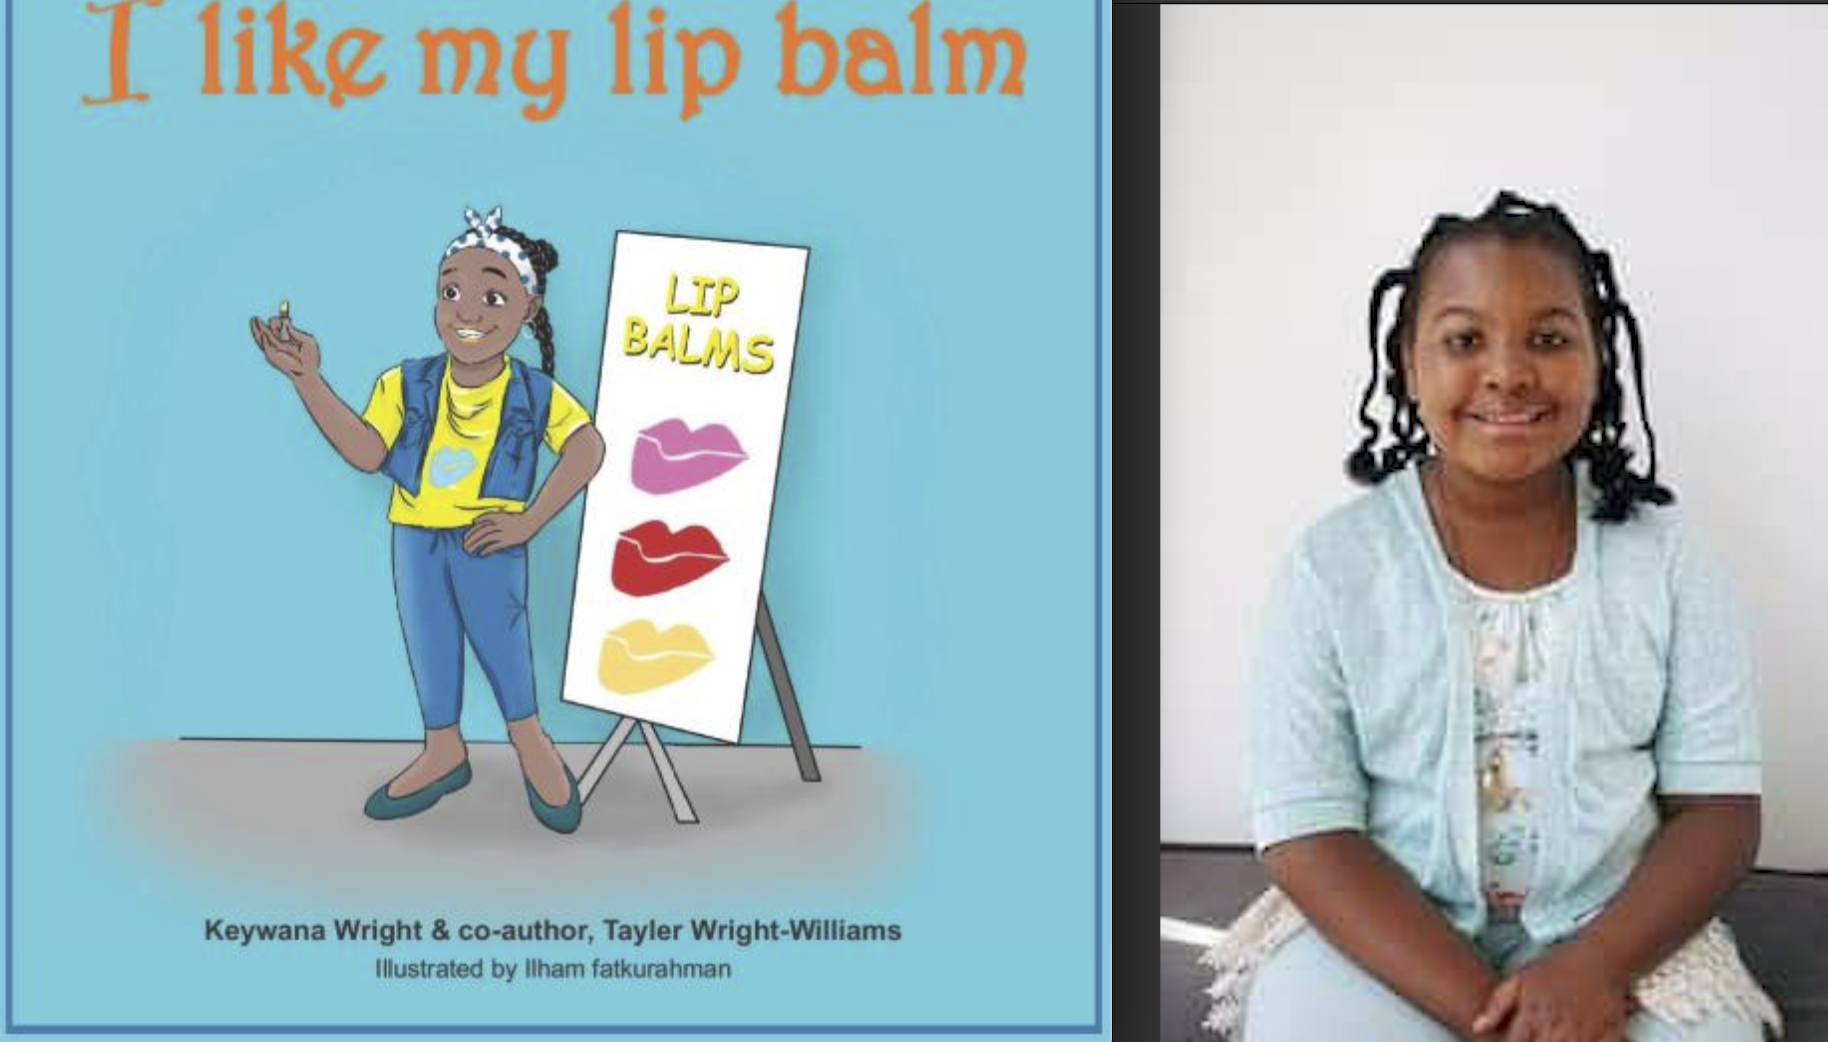 Flint native Tayler Wright-Williams published her first children's book at 10-years-old.